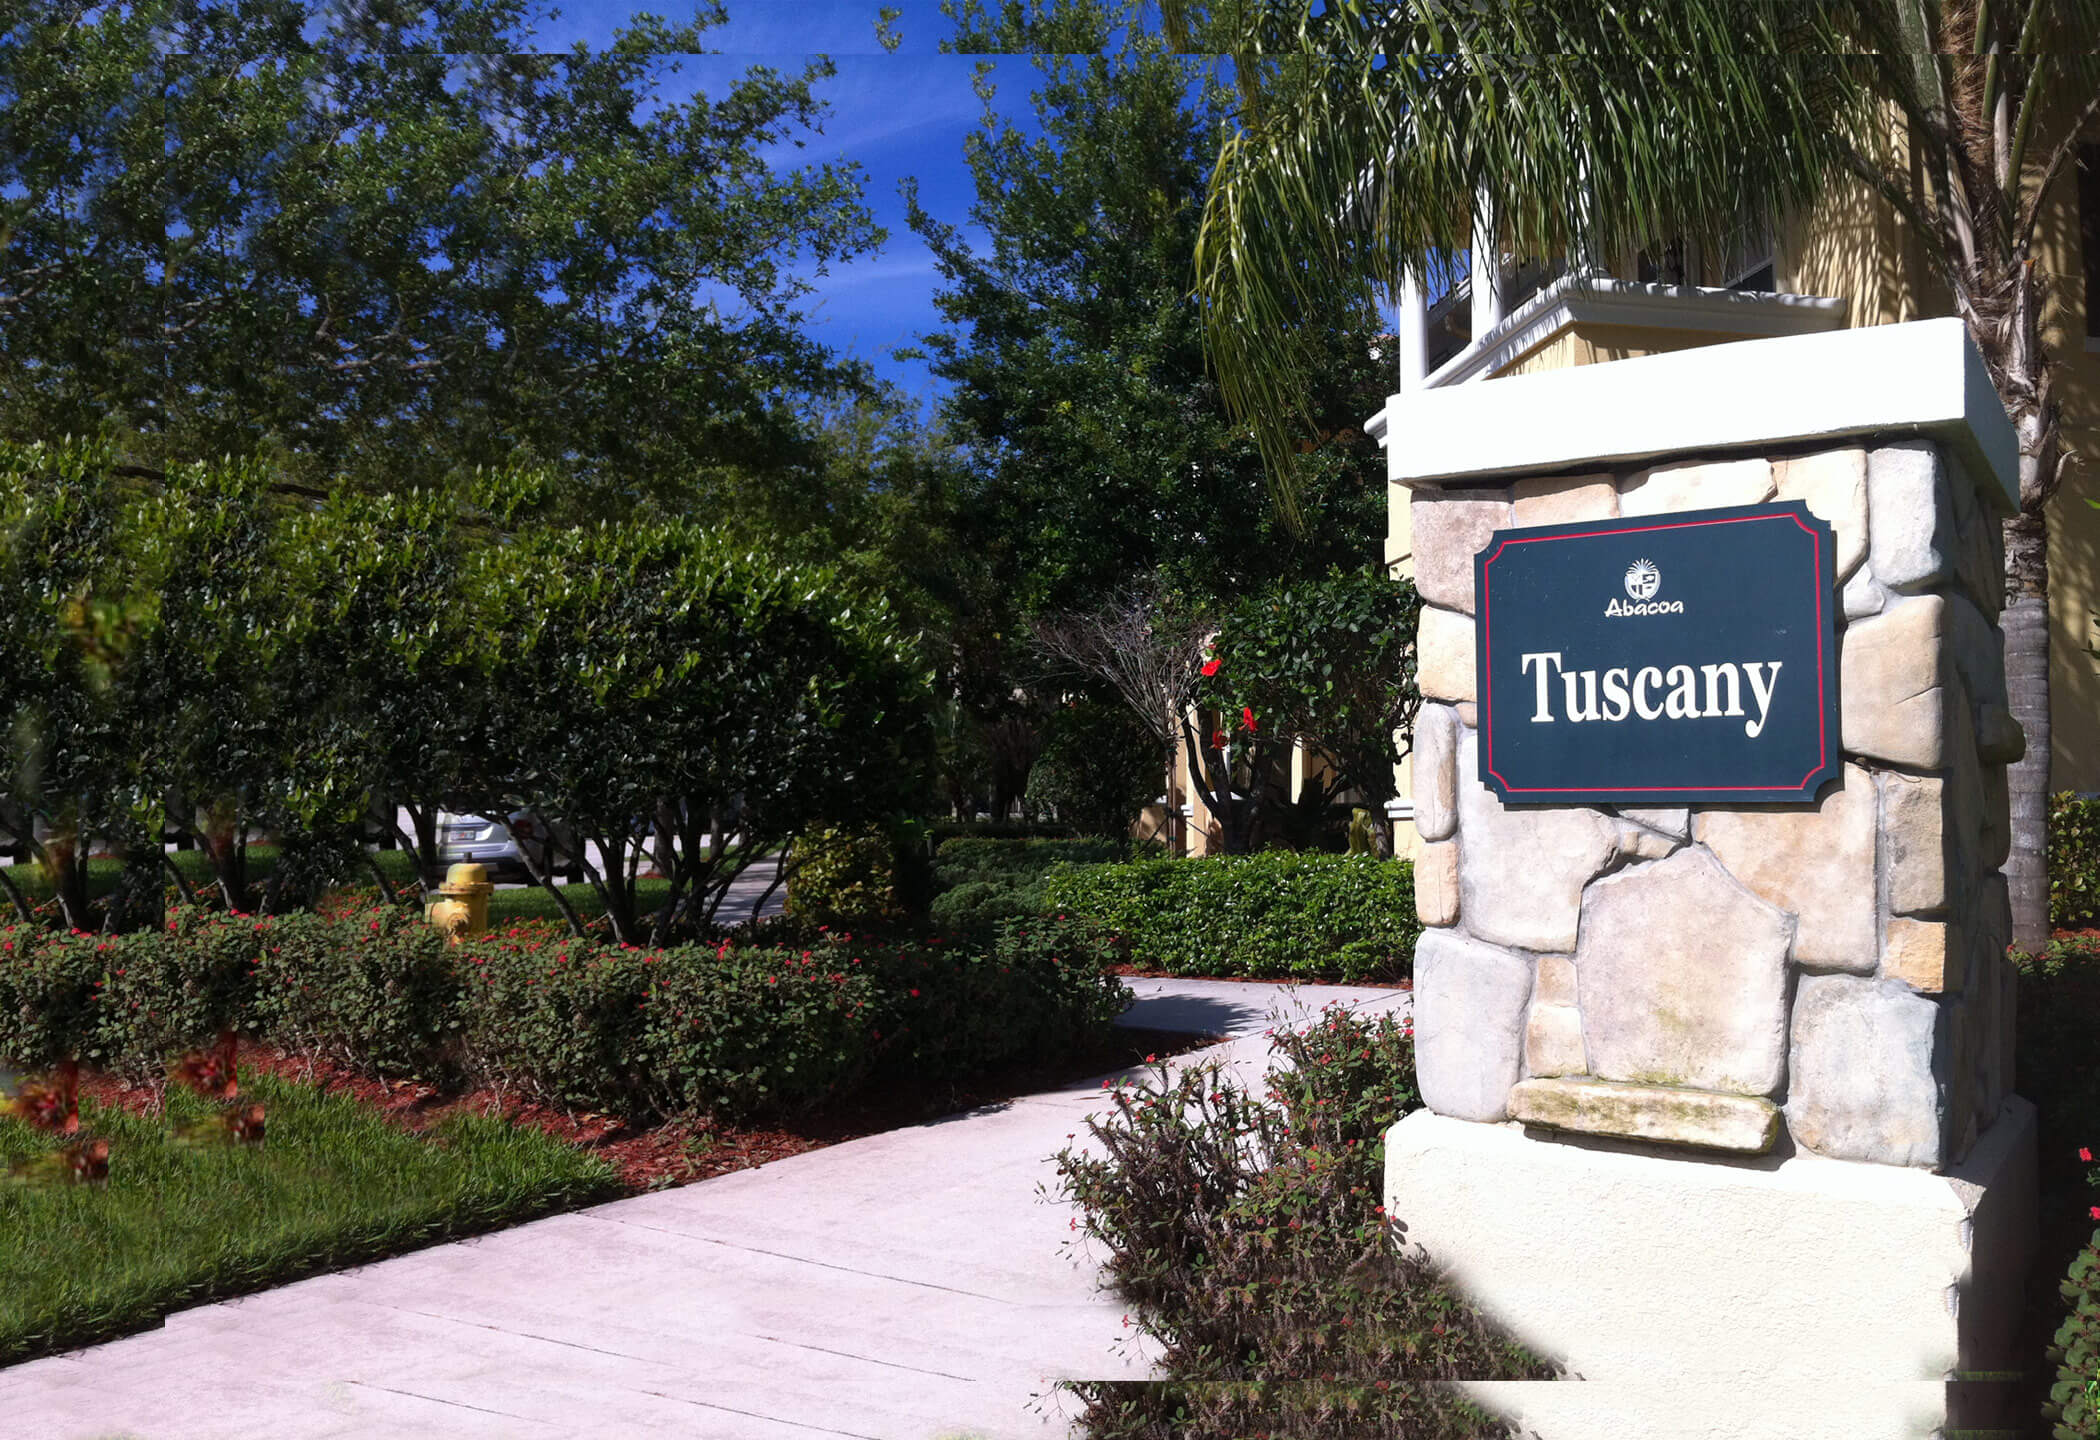 Tuscany Abacoa Homes For Sale Abacoa In Jupiter Florida